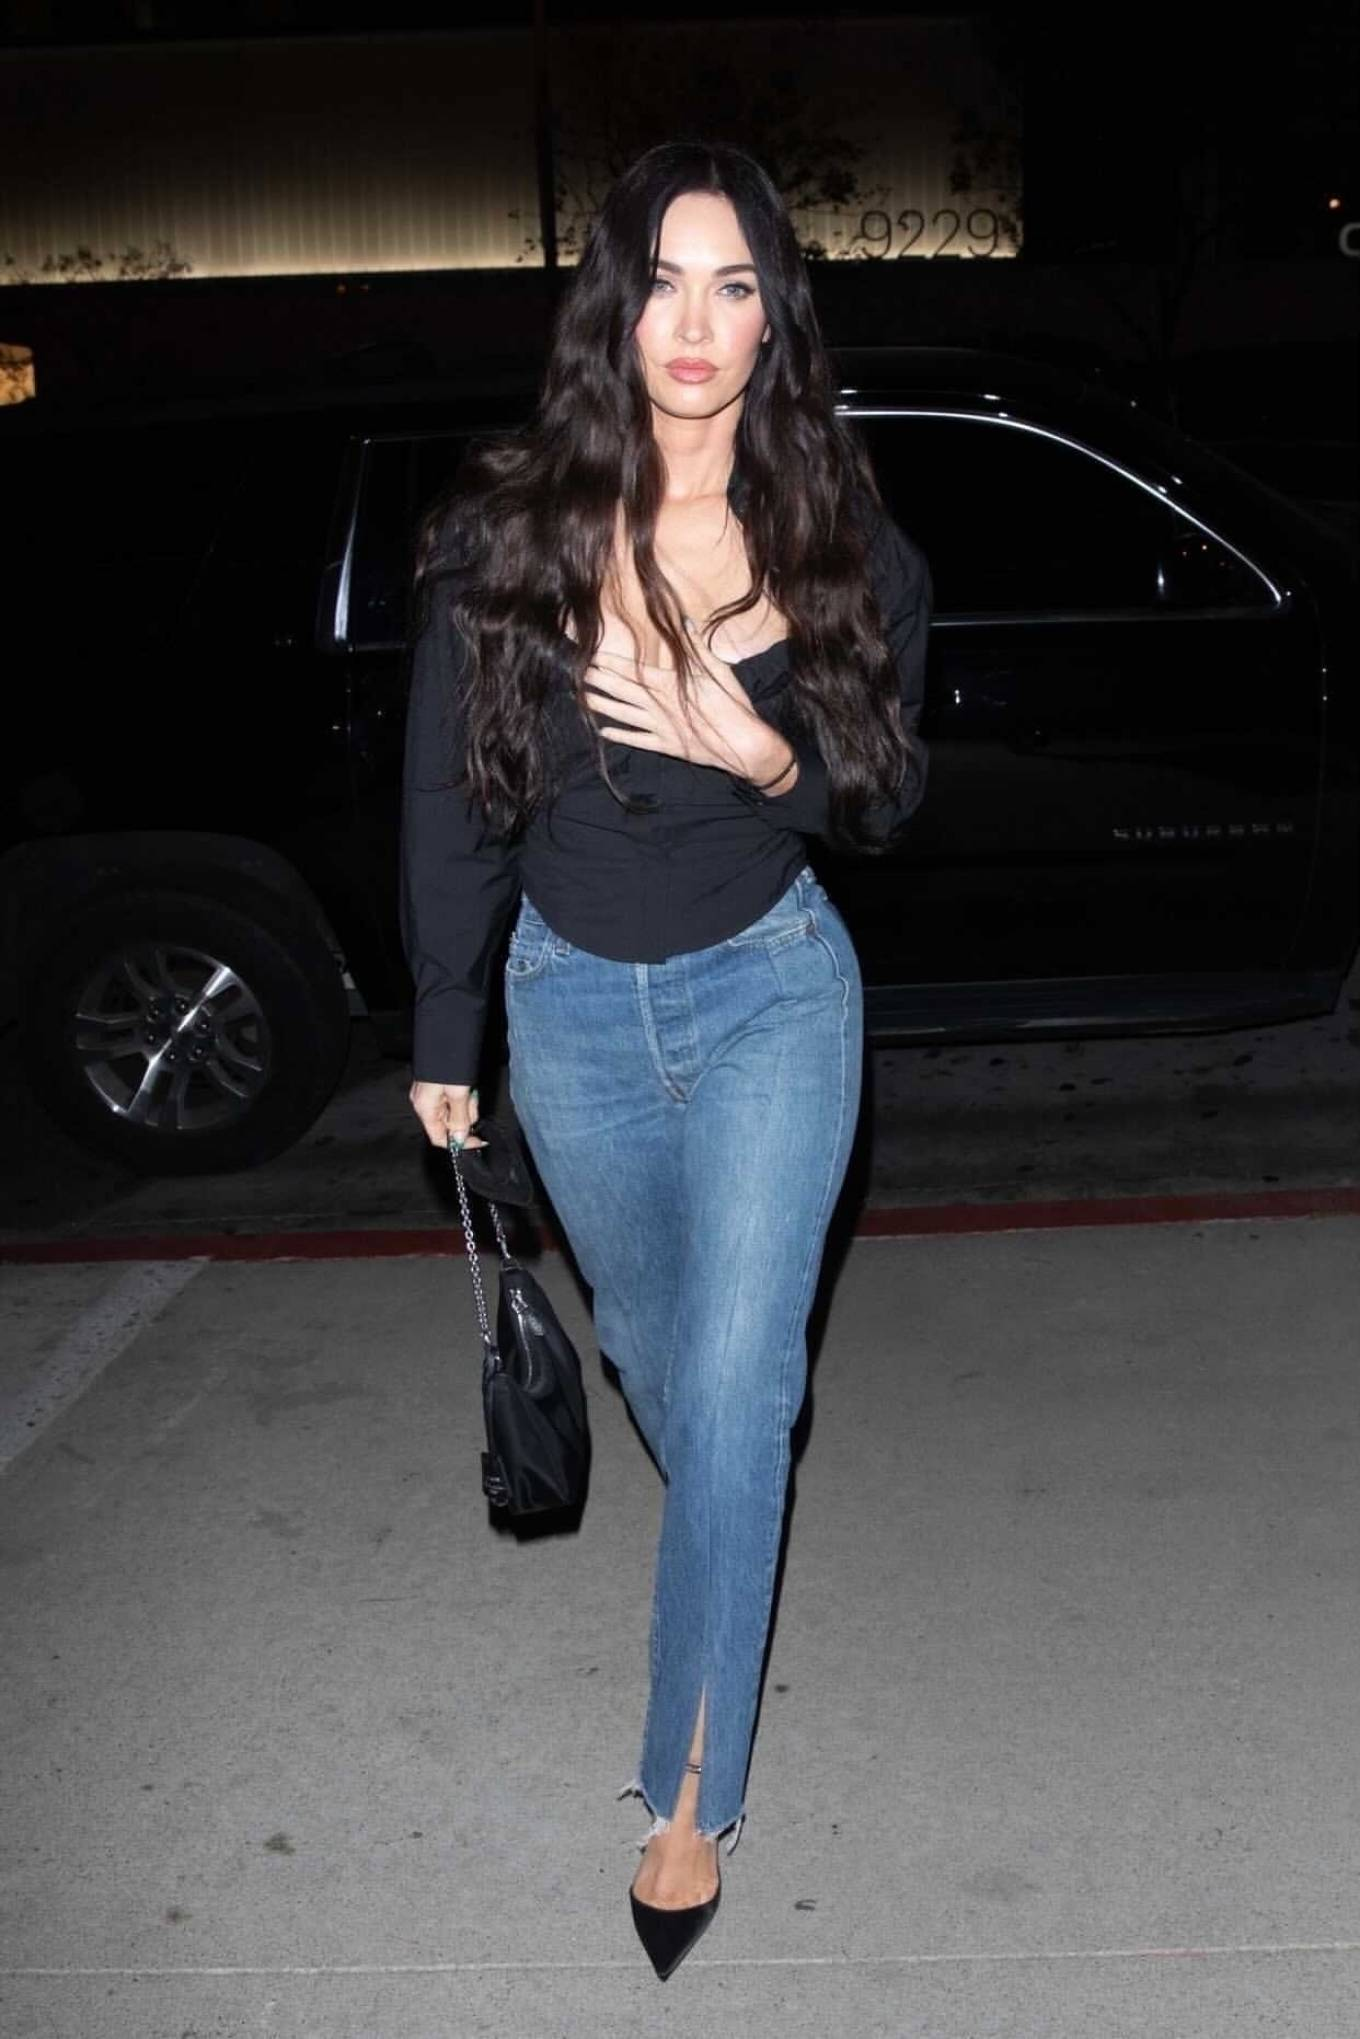 Megan Fox 2021 : Megan Fox – Out alone for dinner in West Hollywood-06